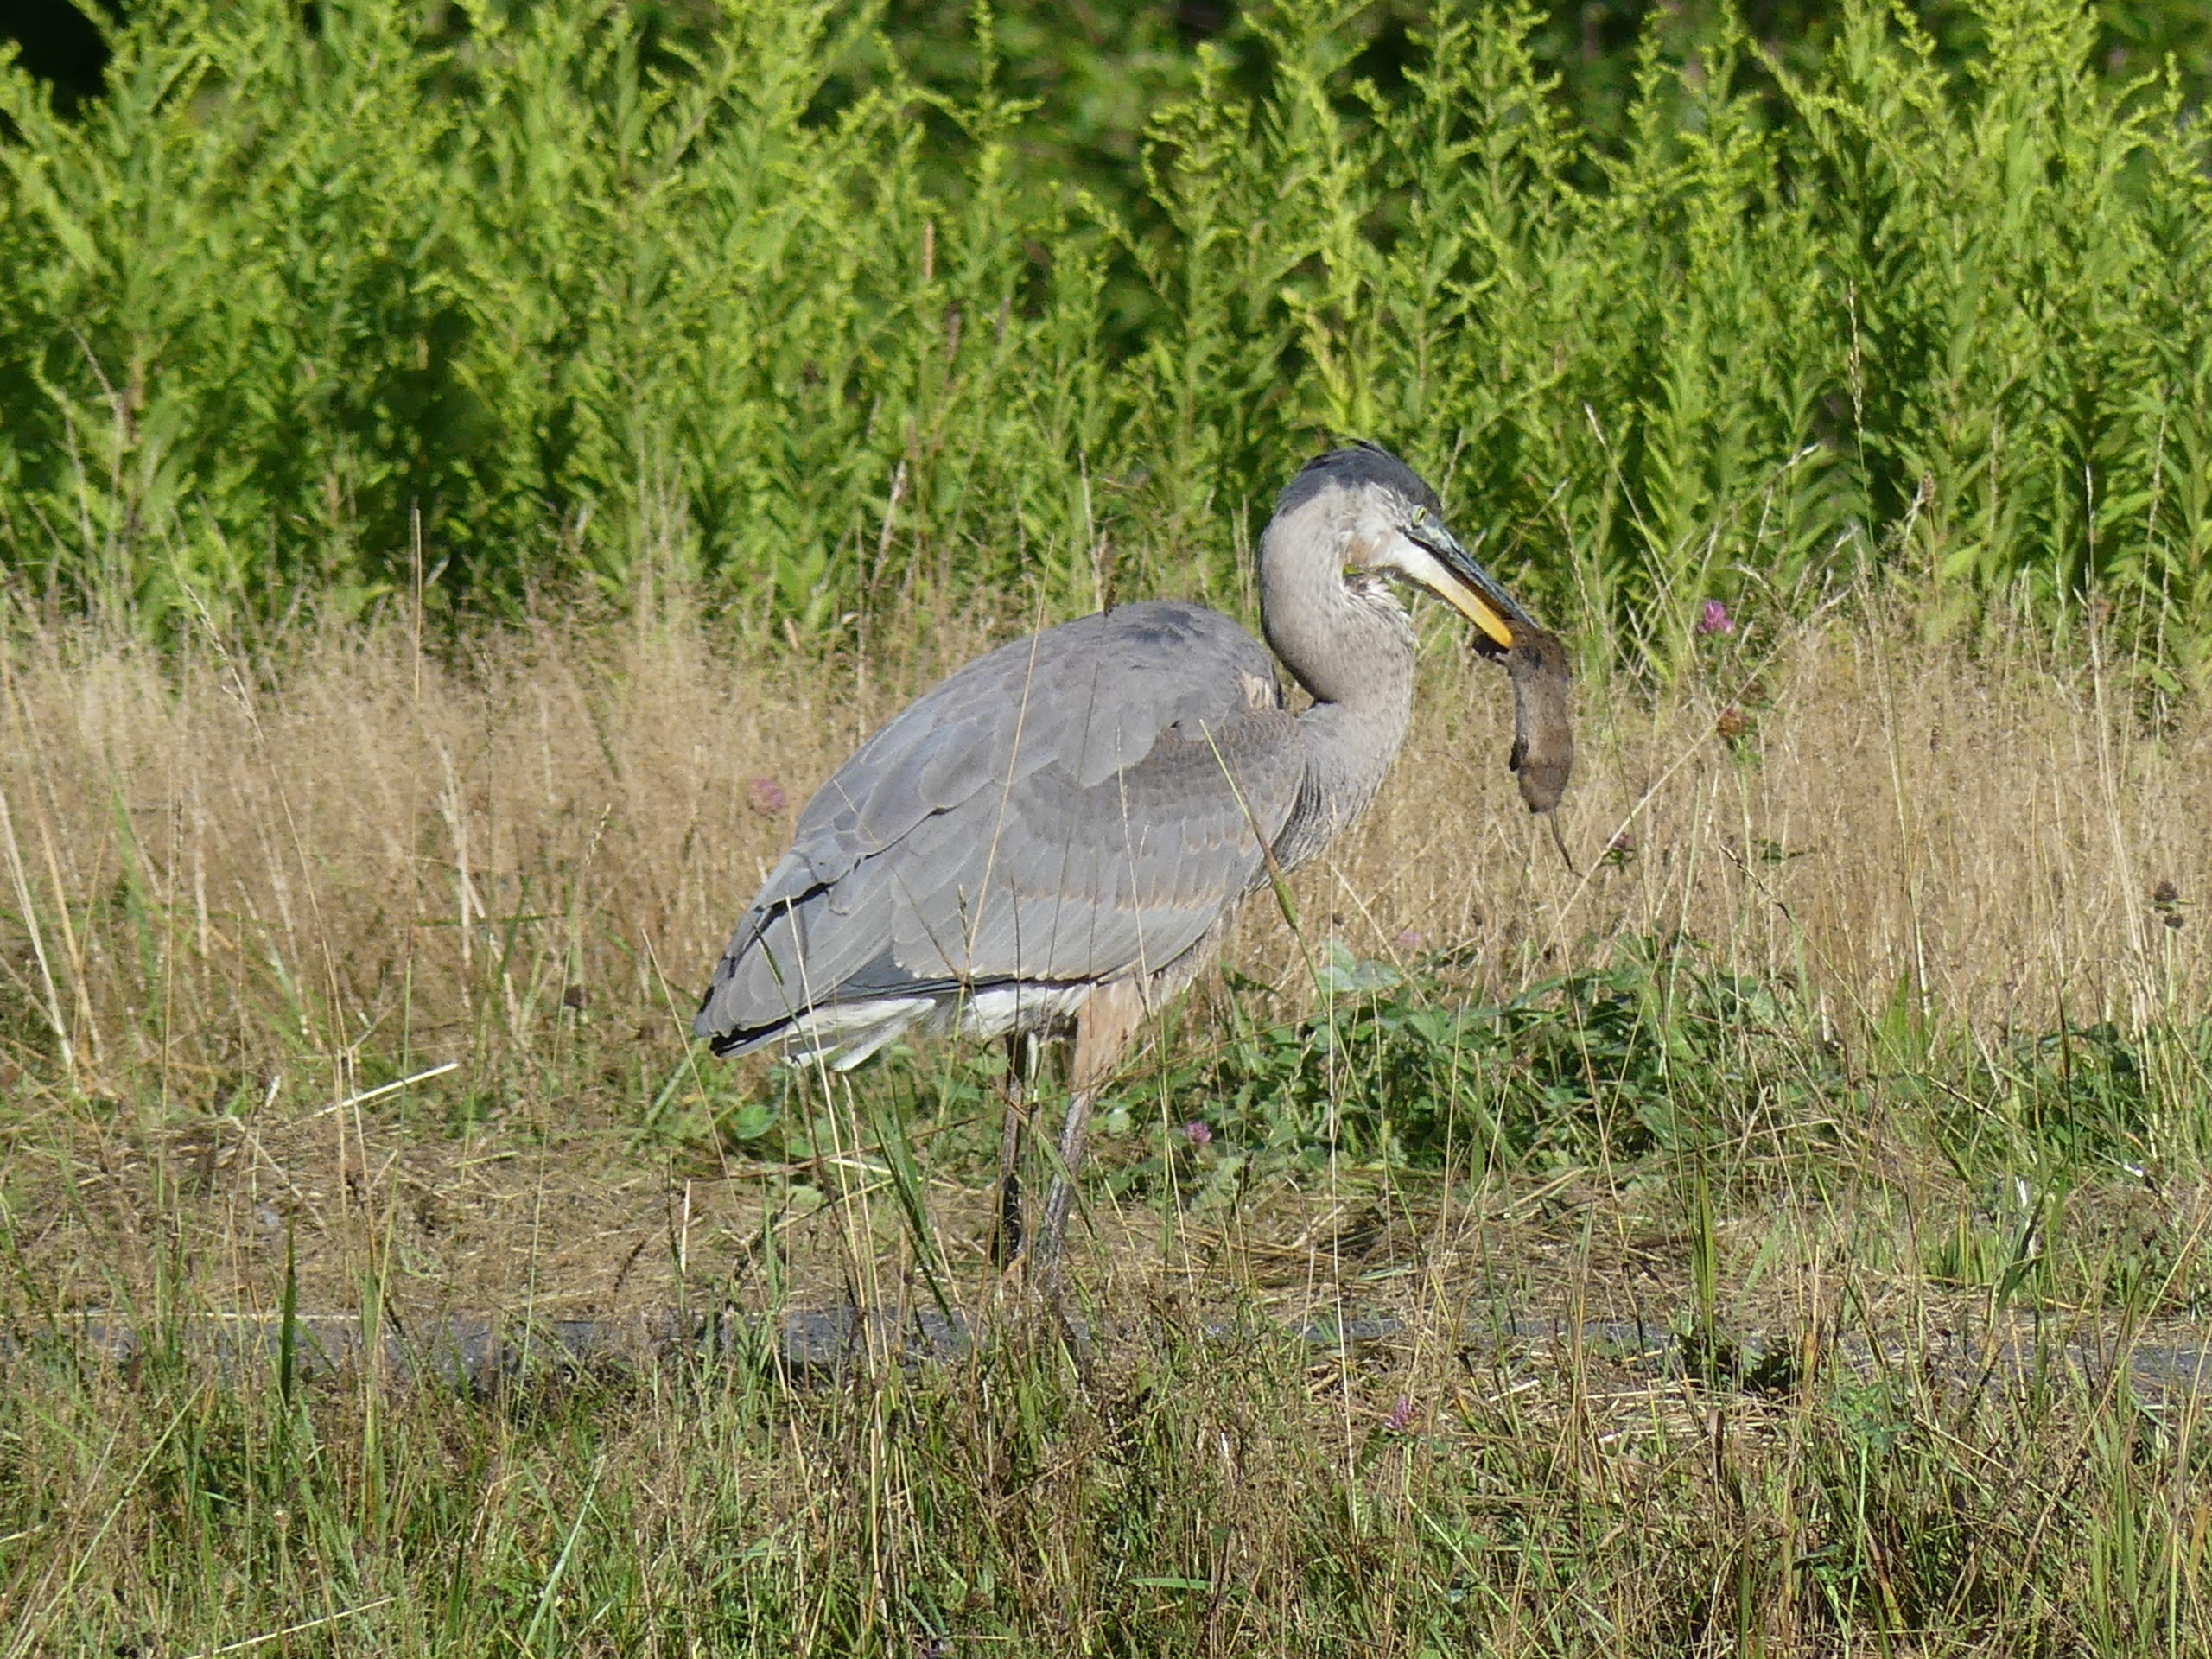 This great blue heron was patrolling a pond bank when it suddenly stopped, aimed at the ground and came up with a hamster-size vole. The vole went down in one gulp.